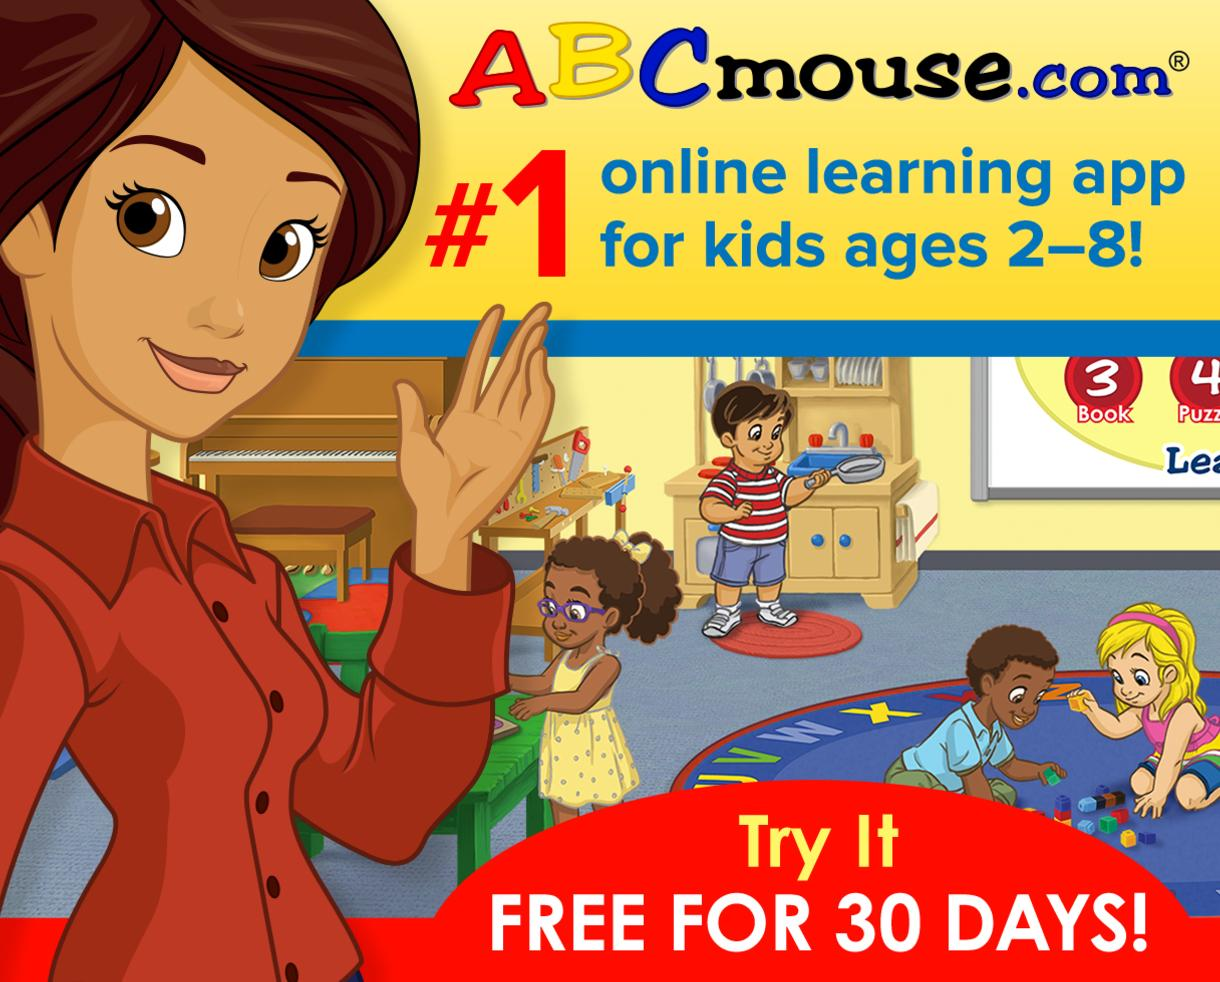 Spring Into Learning with ABCmouse: Get ABCmouse Free for 30 Days!